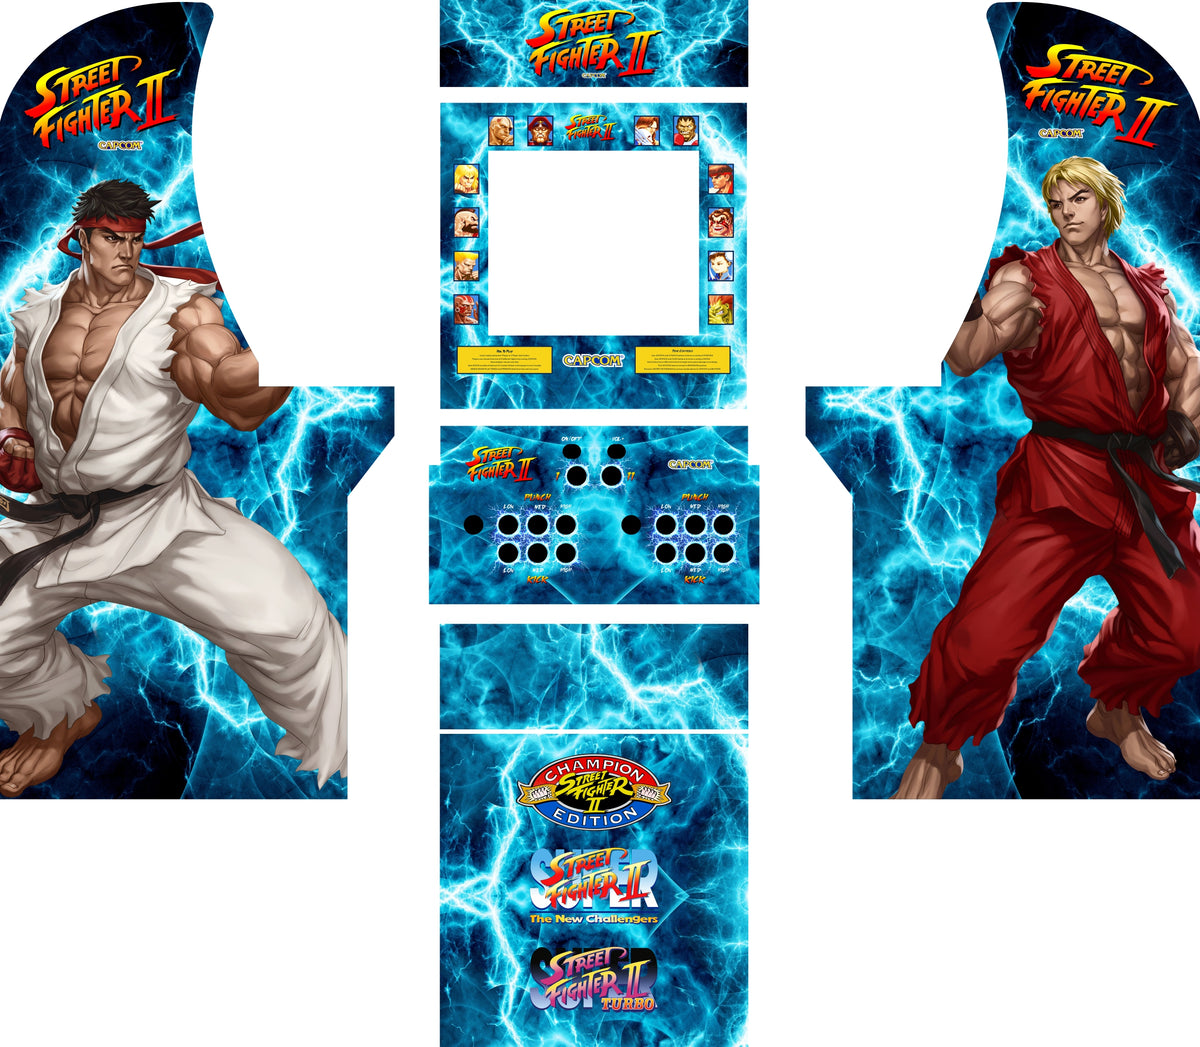 street fighter 2 arcade side art